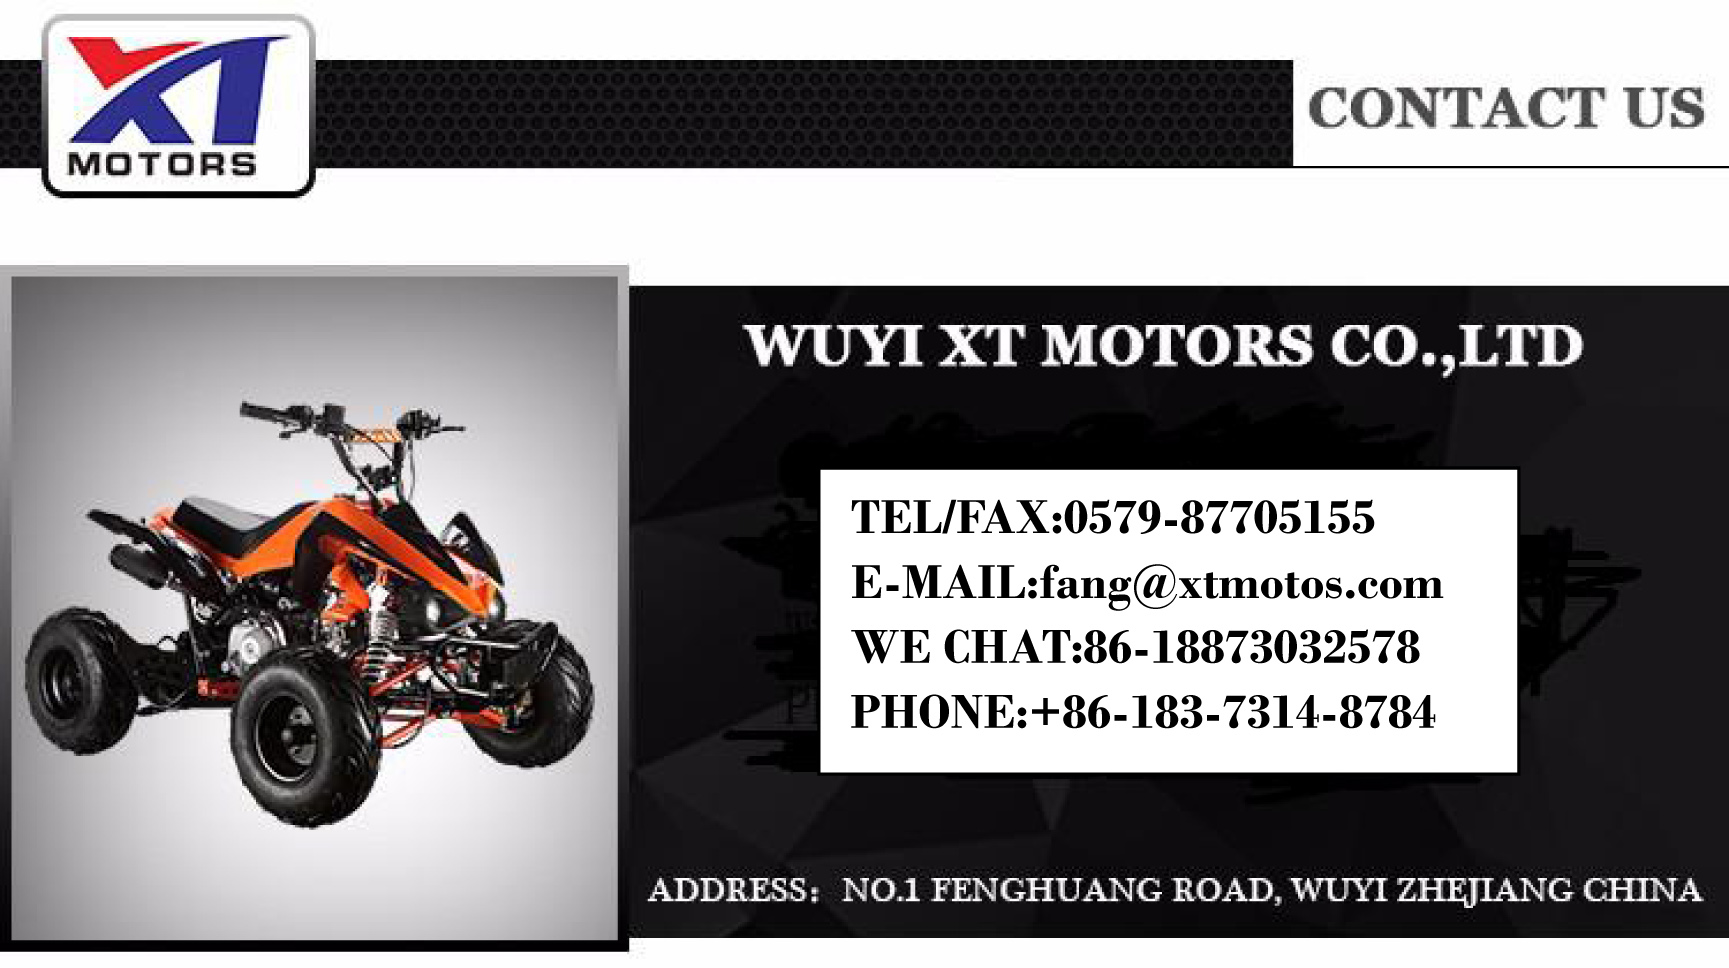 Electric start Auto clutch Four wheelers 4 STROKE 50CC 70cc 90cc 110cc MINI ATV/MINI QUAD with chain drive